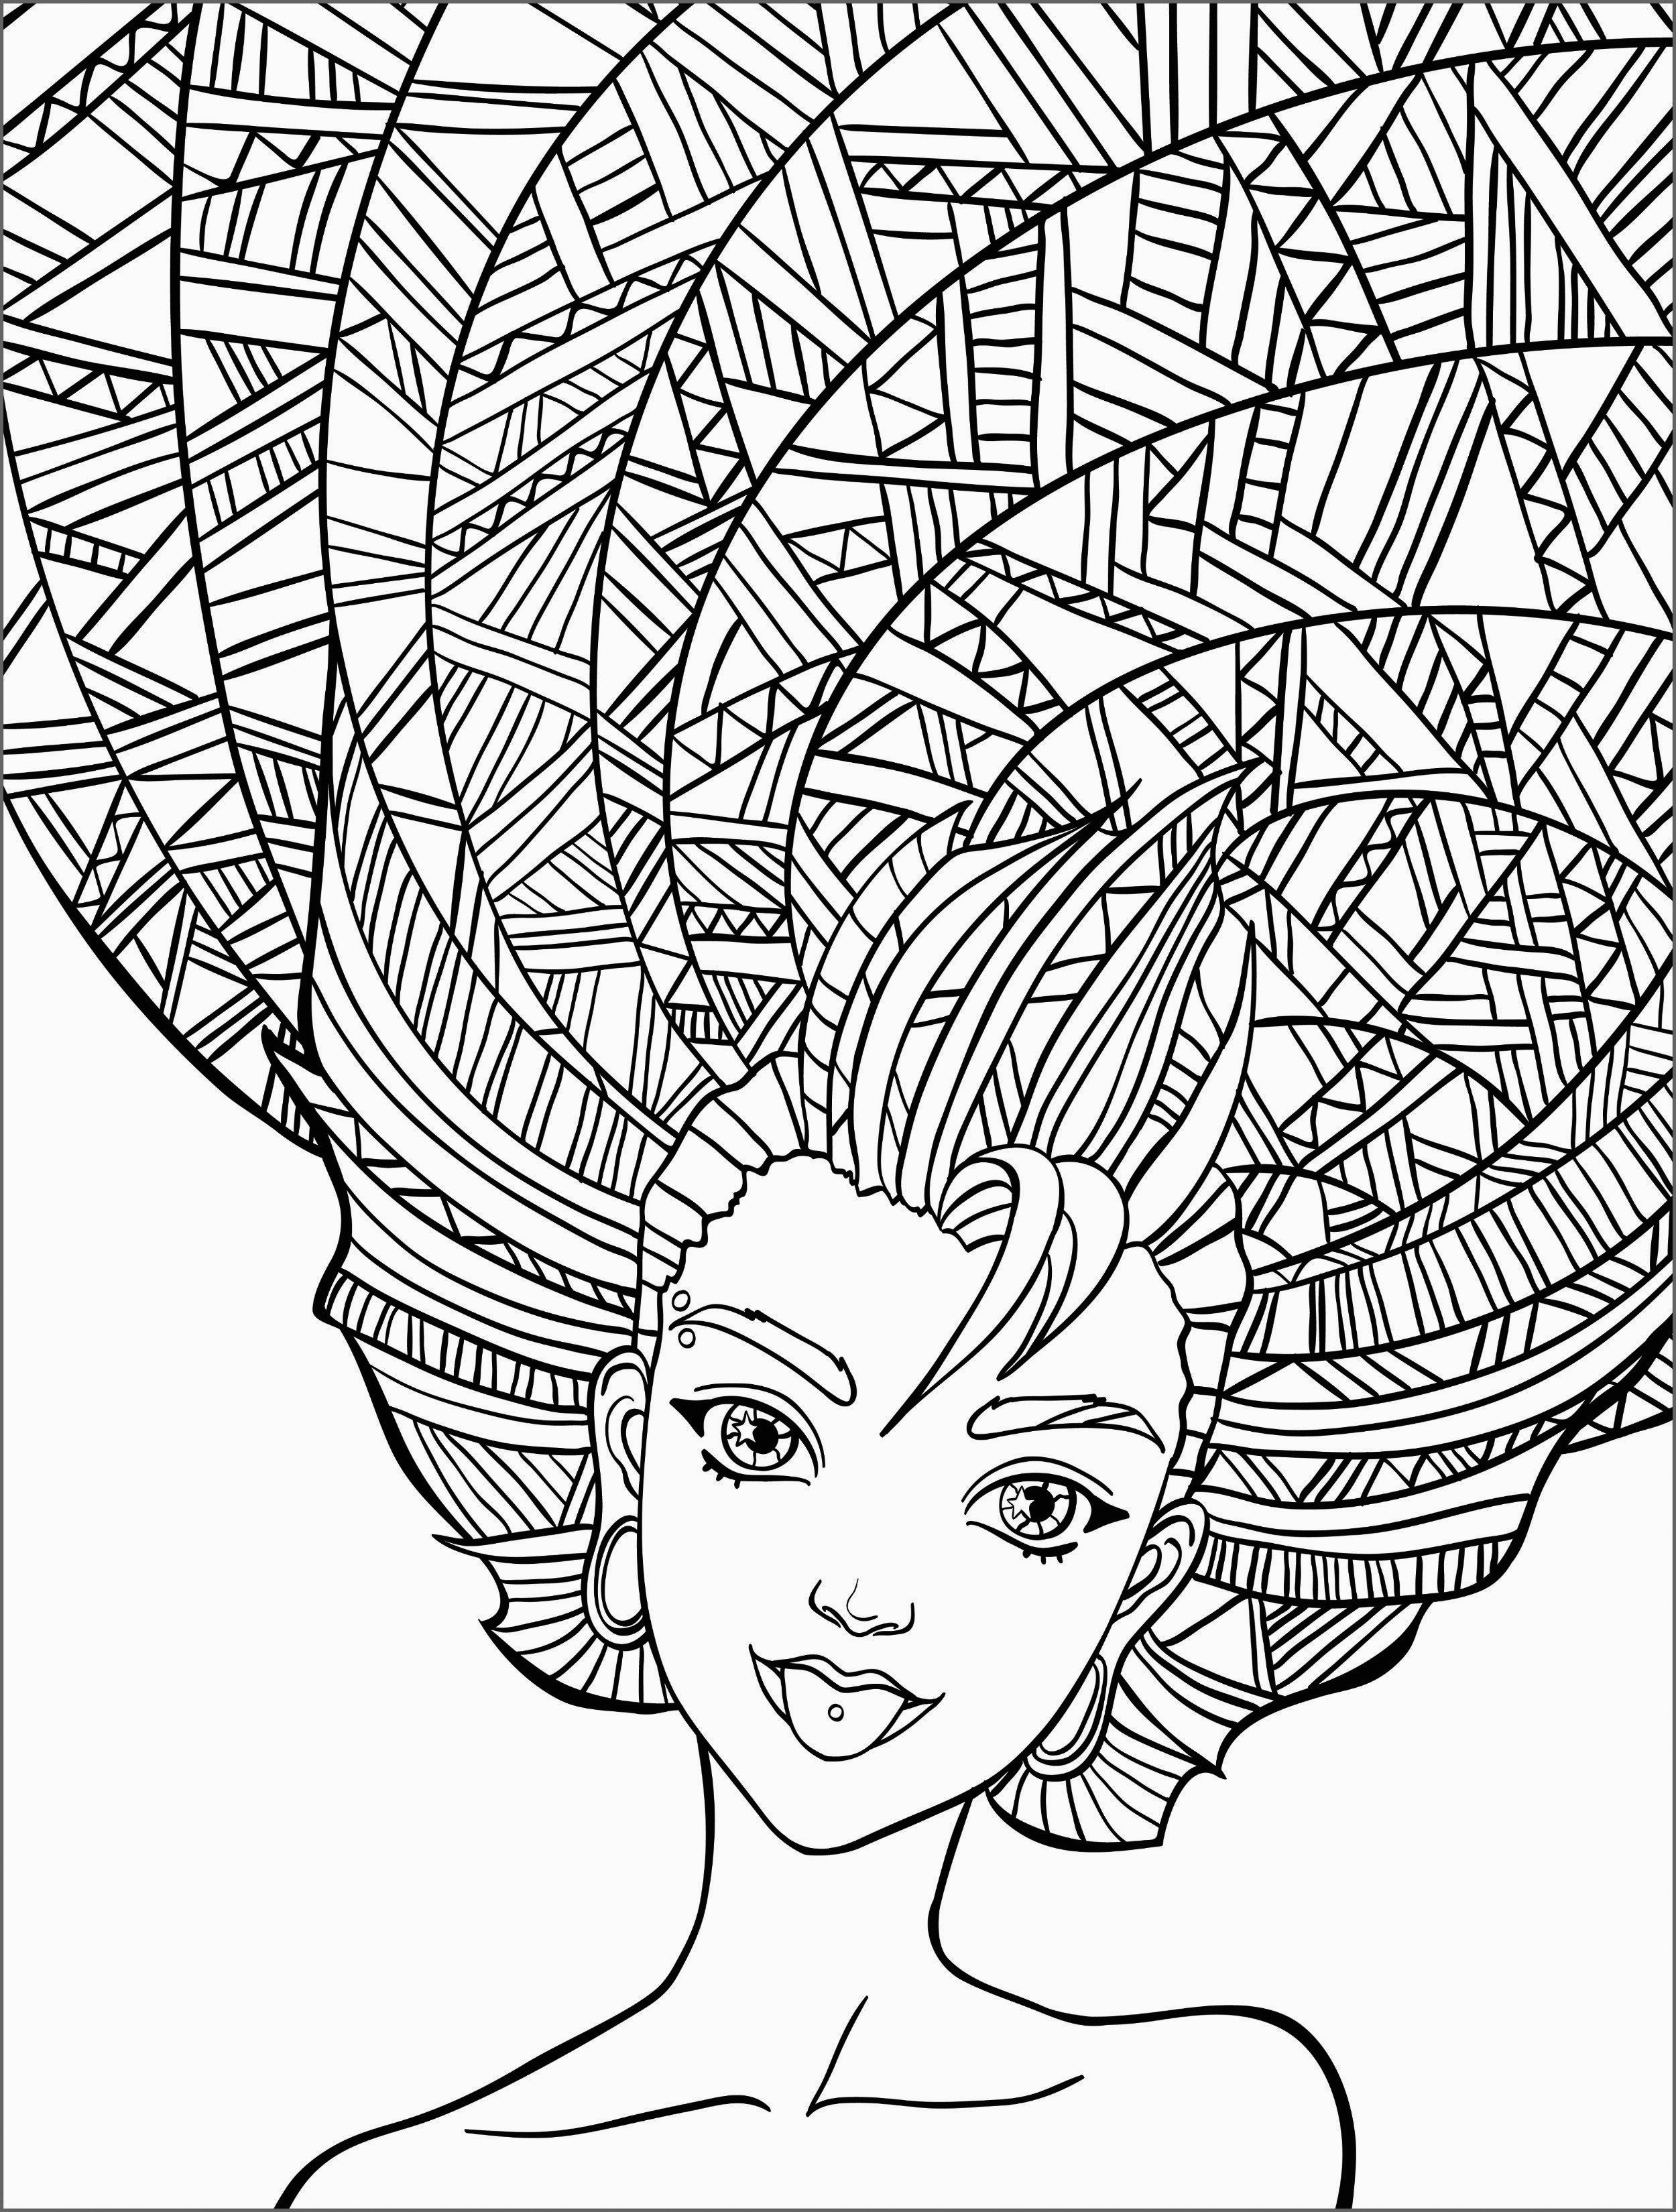 Coloring Pages for Adults - Best Coloring Pages For Kids | coloring pages for adults cool